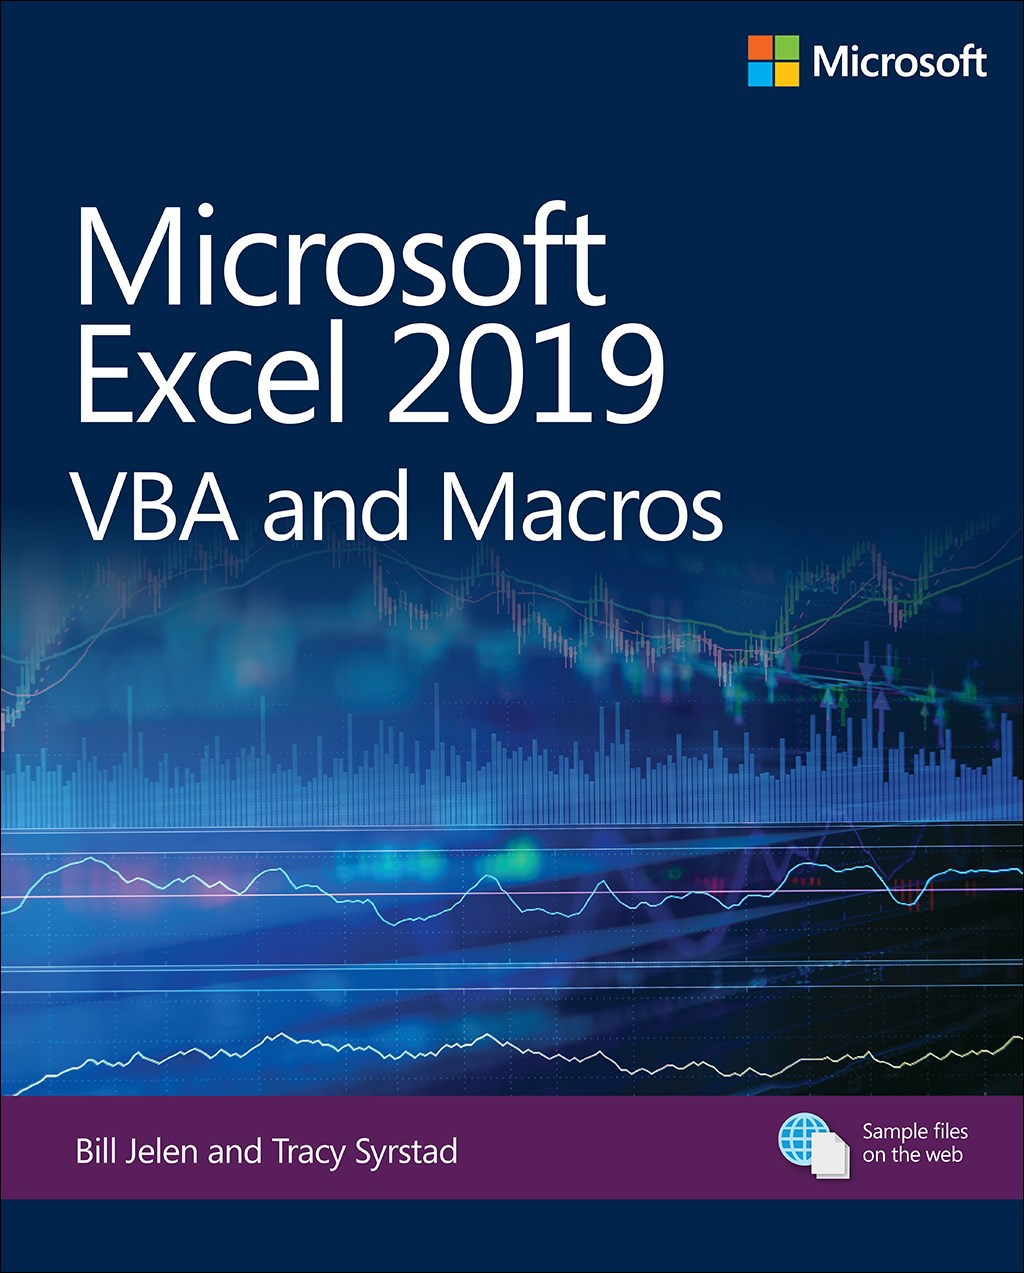 Microsoft Excel 2019 VBA and Macros